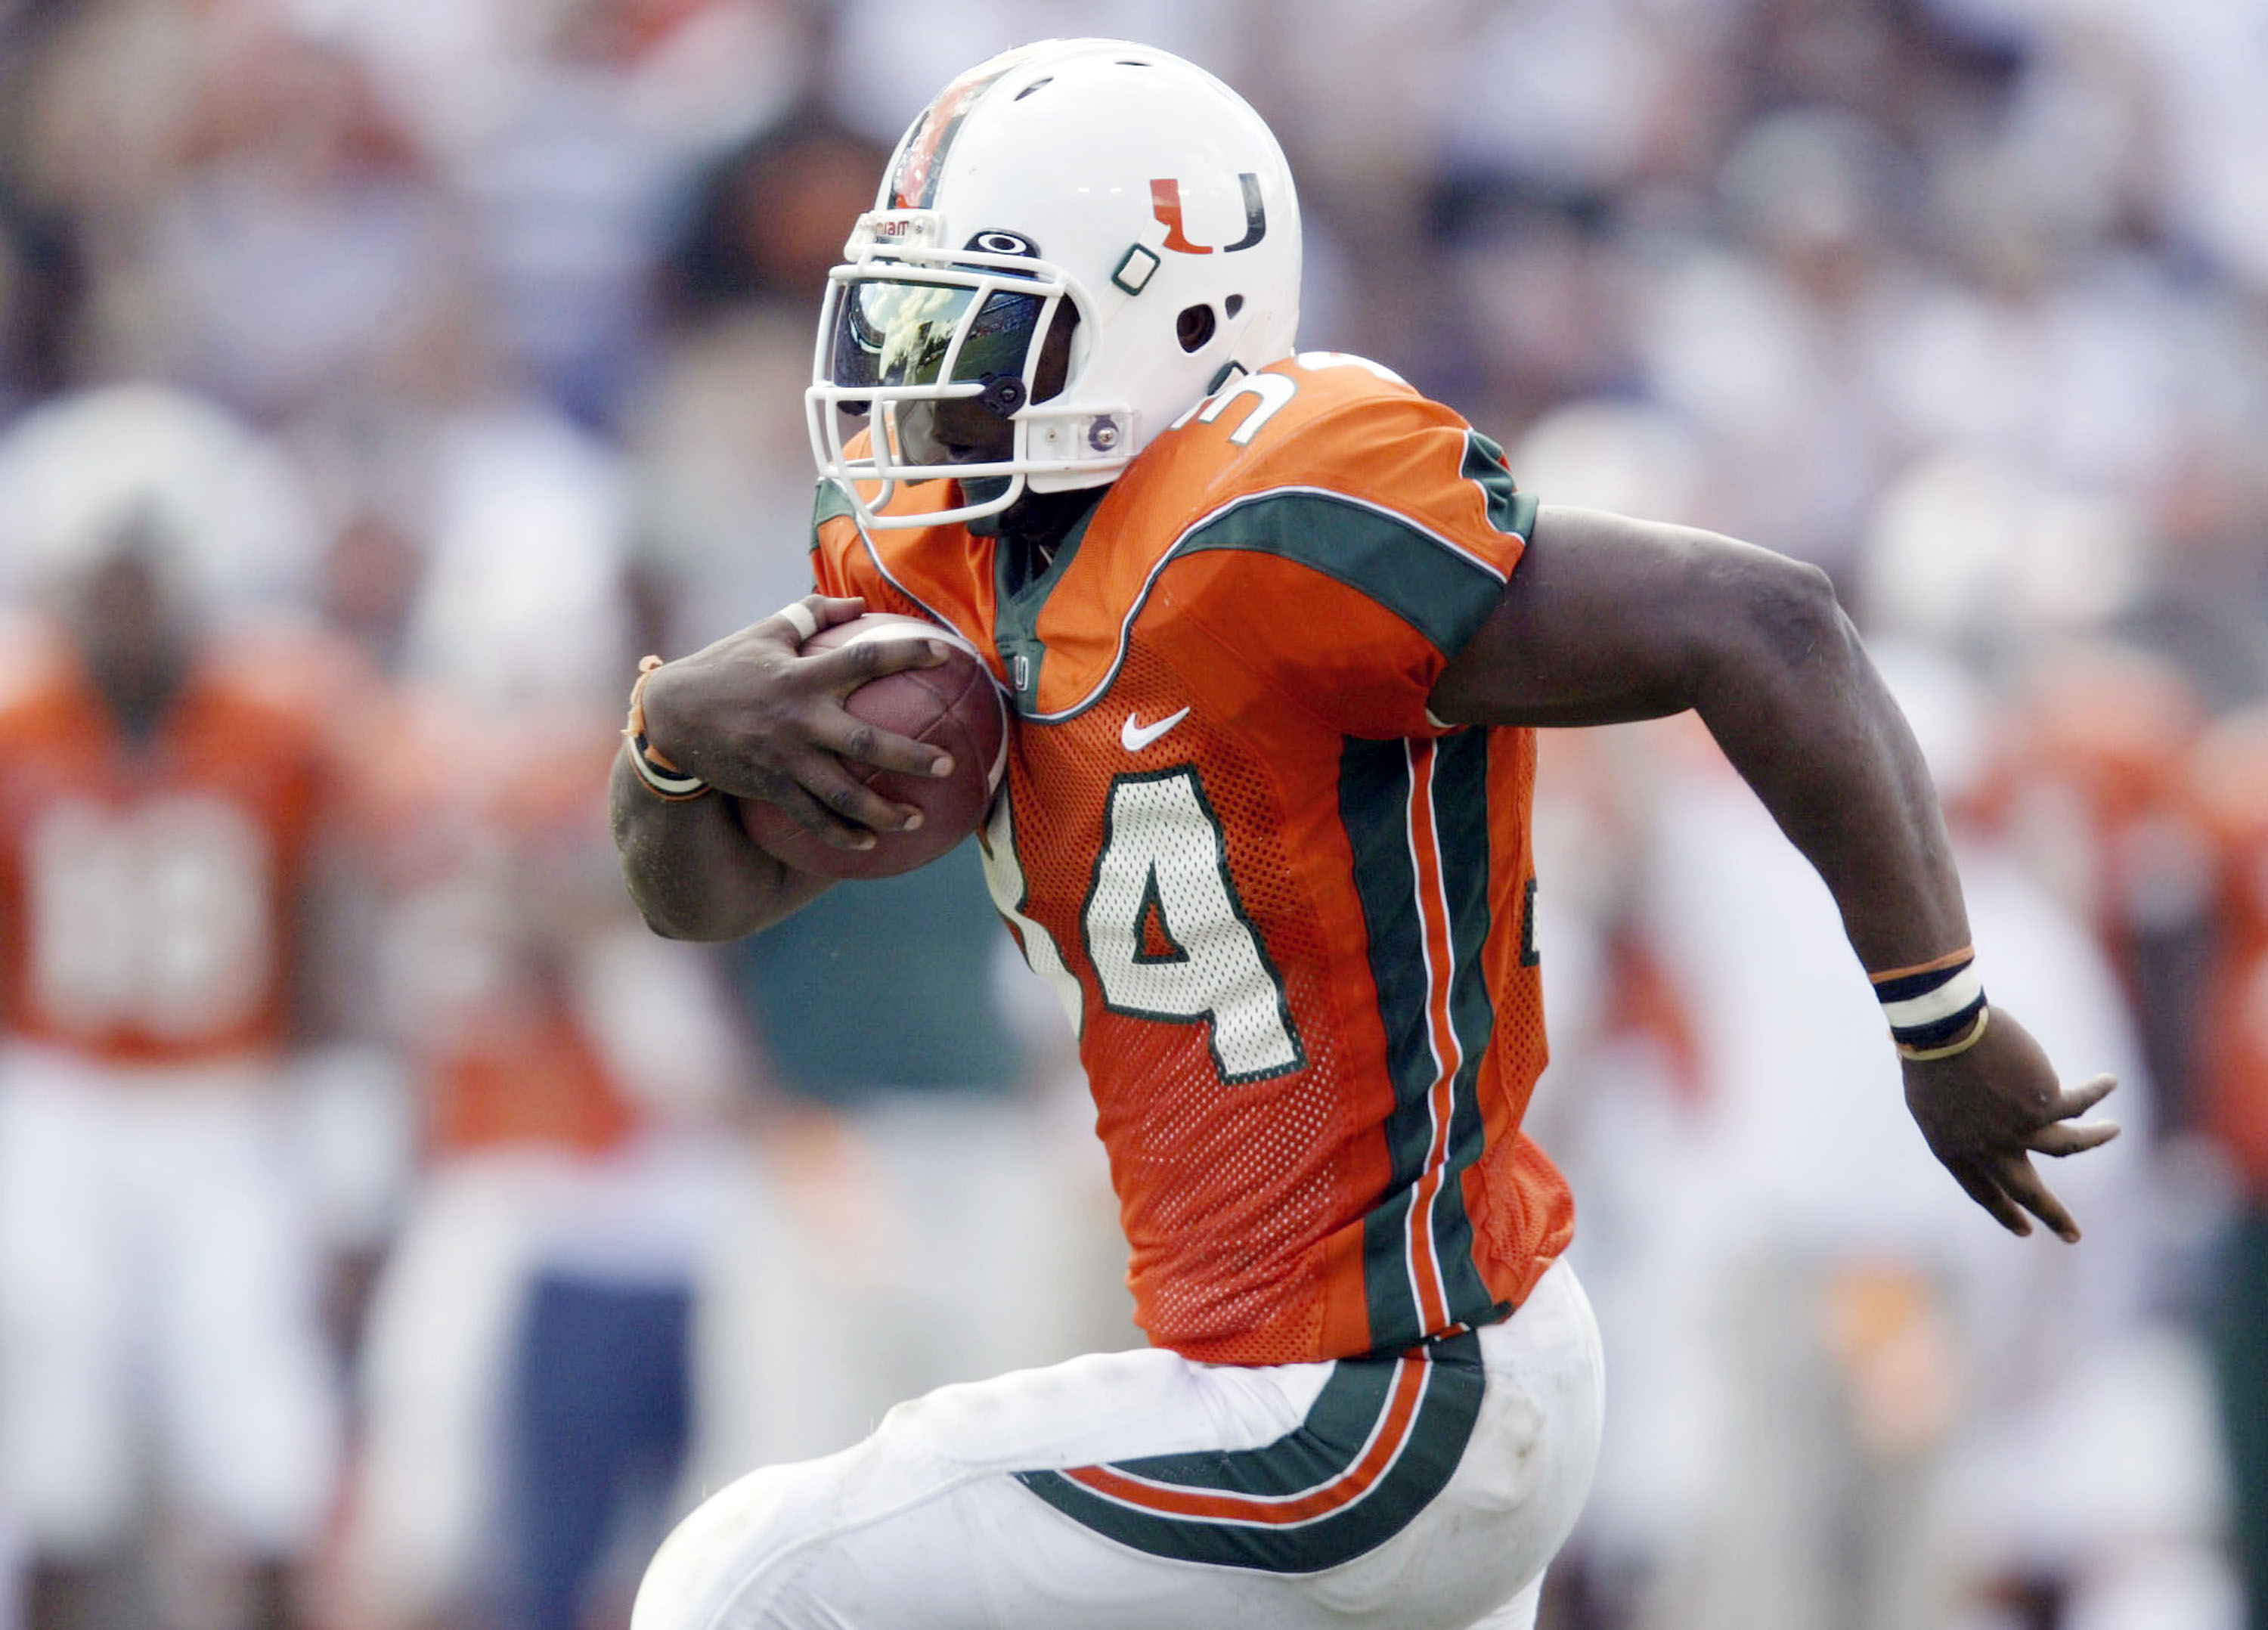 Jarrett Payton #34 of Miami carries the ball against Rutgers November 22, 2003 at the Orange Bowl in Miami, Florida.